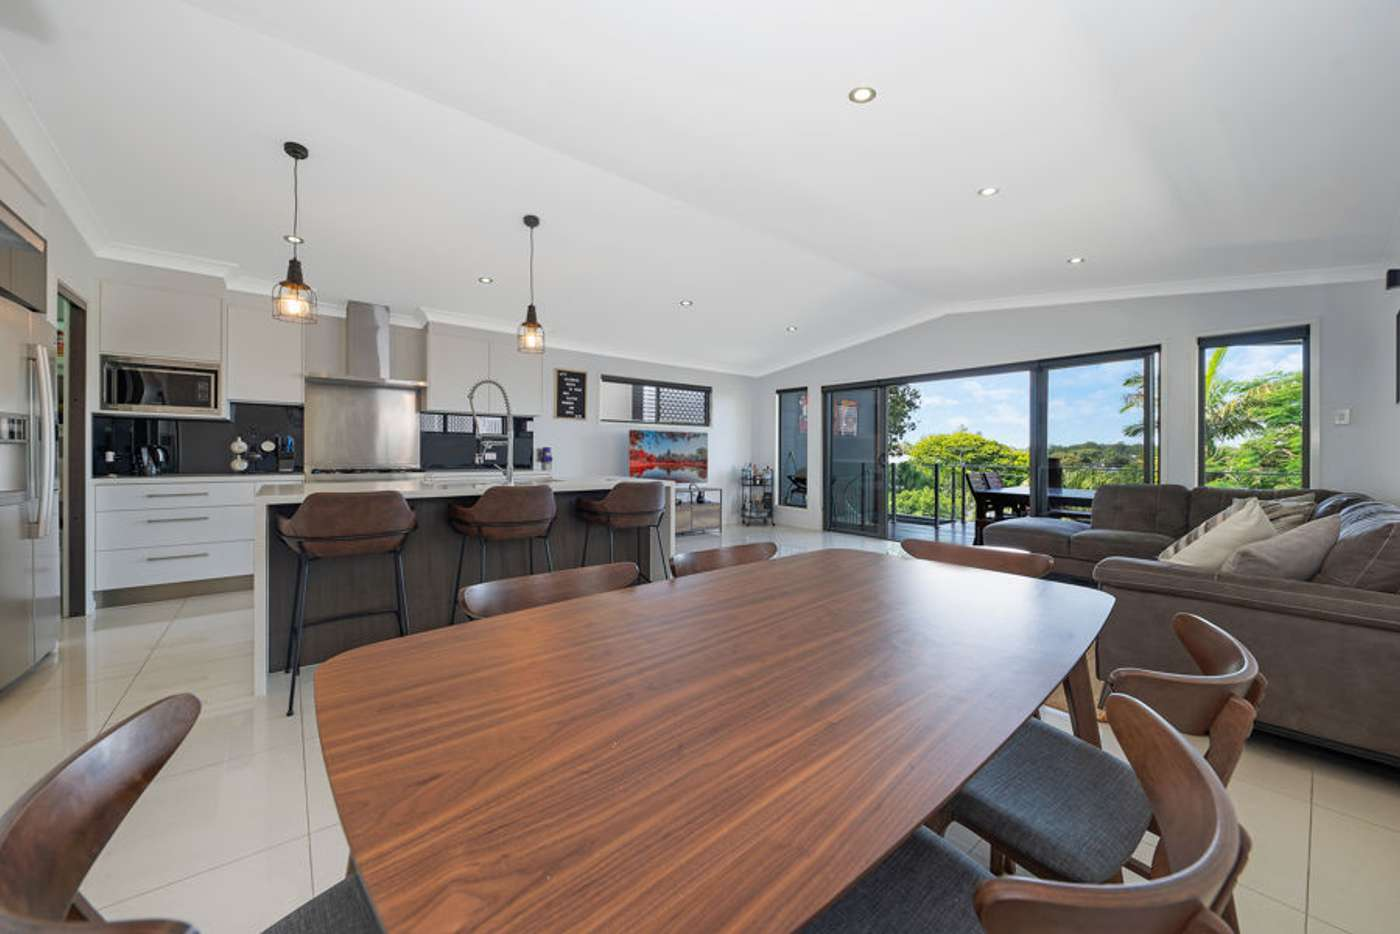 Fifth view of Homely house listing, 87 Hoff St, Mount Gravatt East QLD 4122